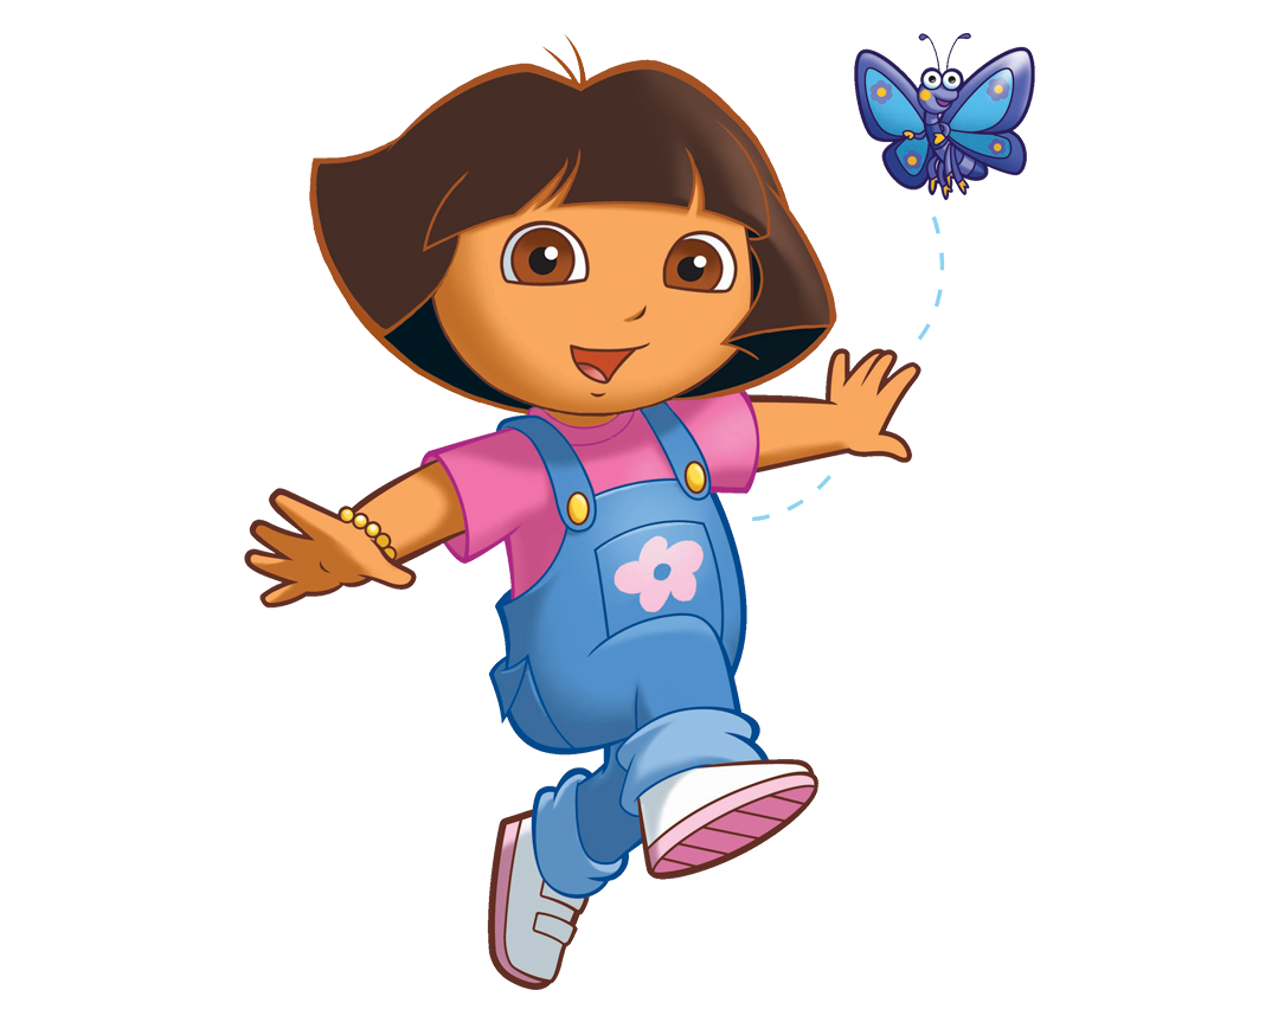 dora logo png wwwpixsharkcom images galleries with a